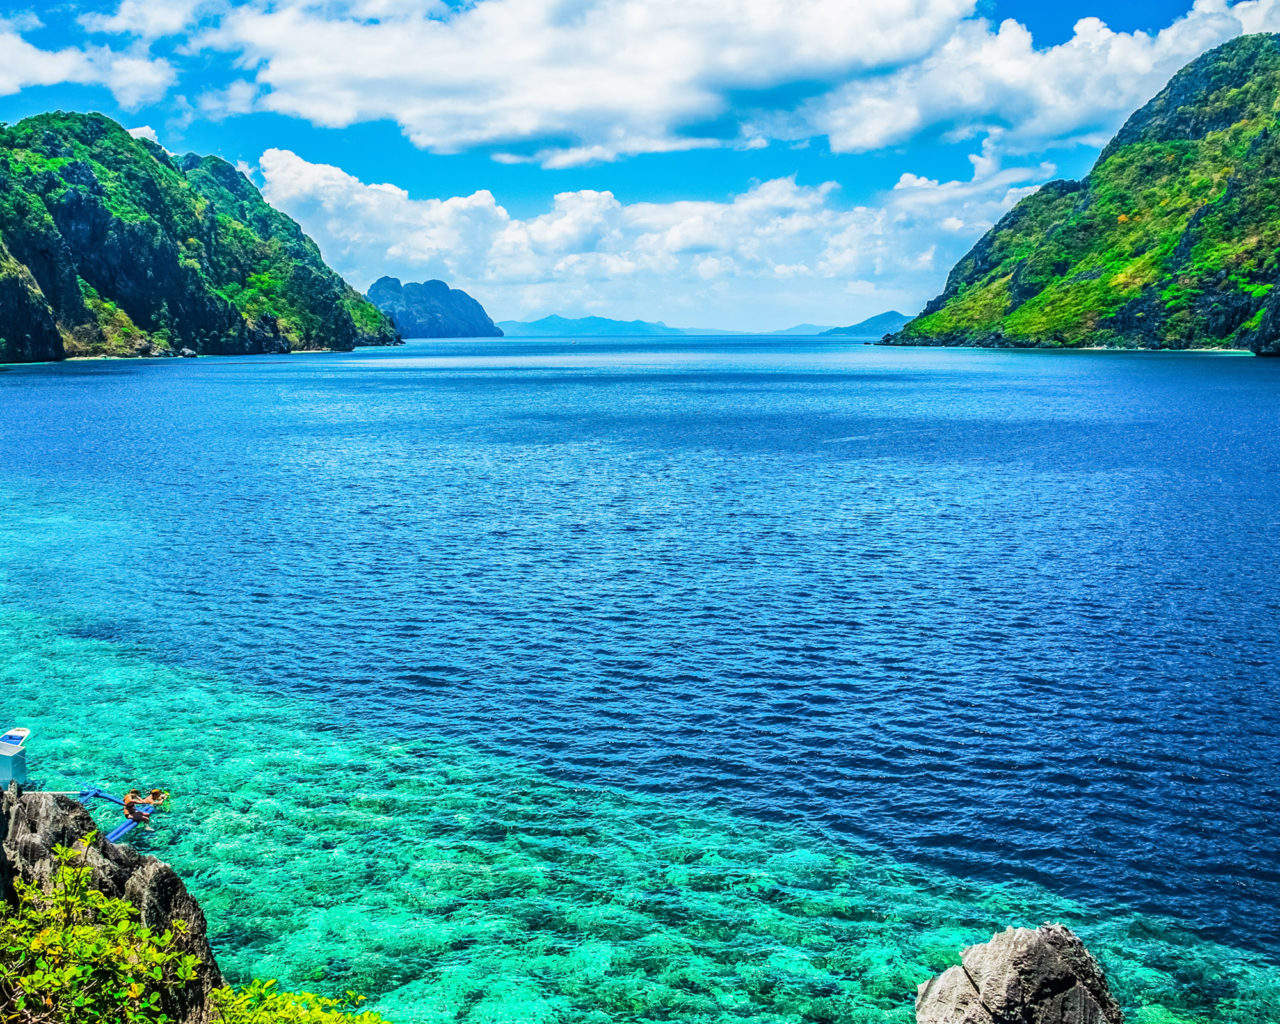 Palawan Philippines A Scenic View Of The Sea And Mountain